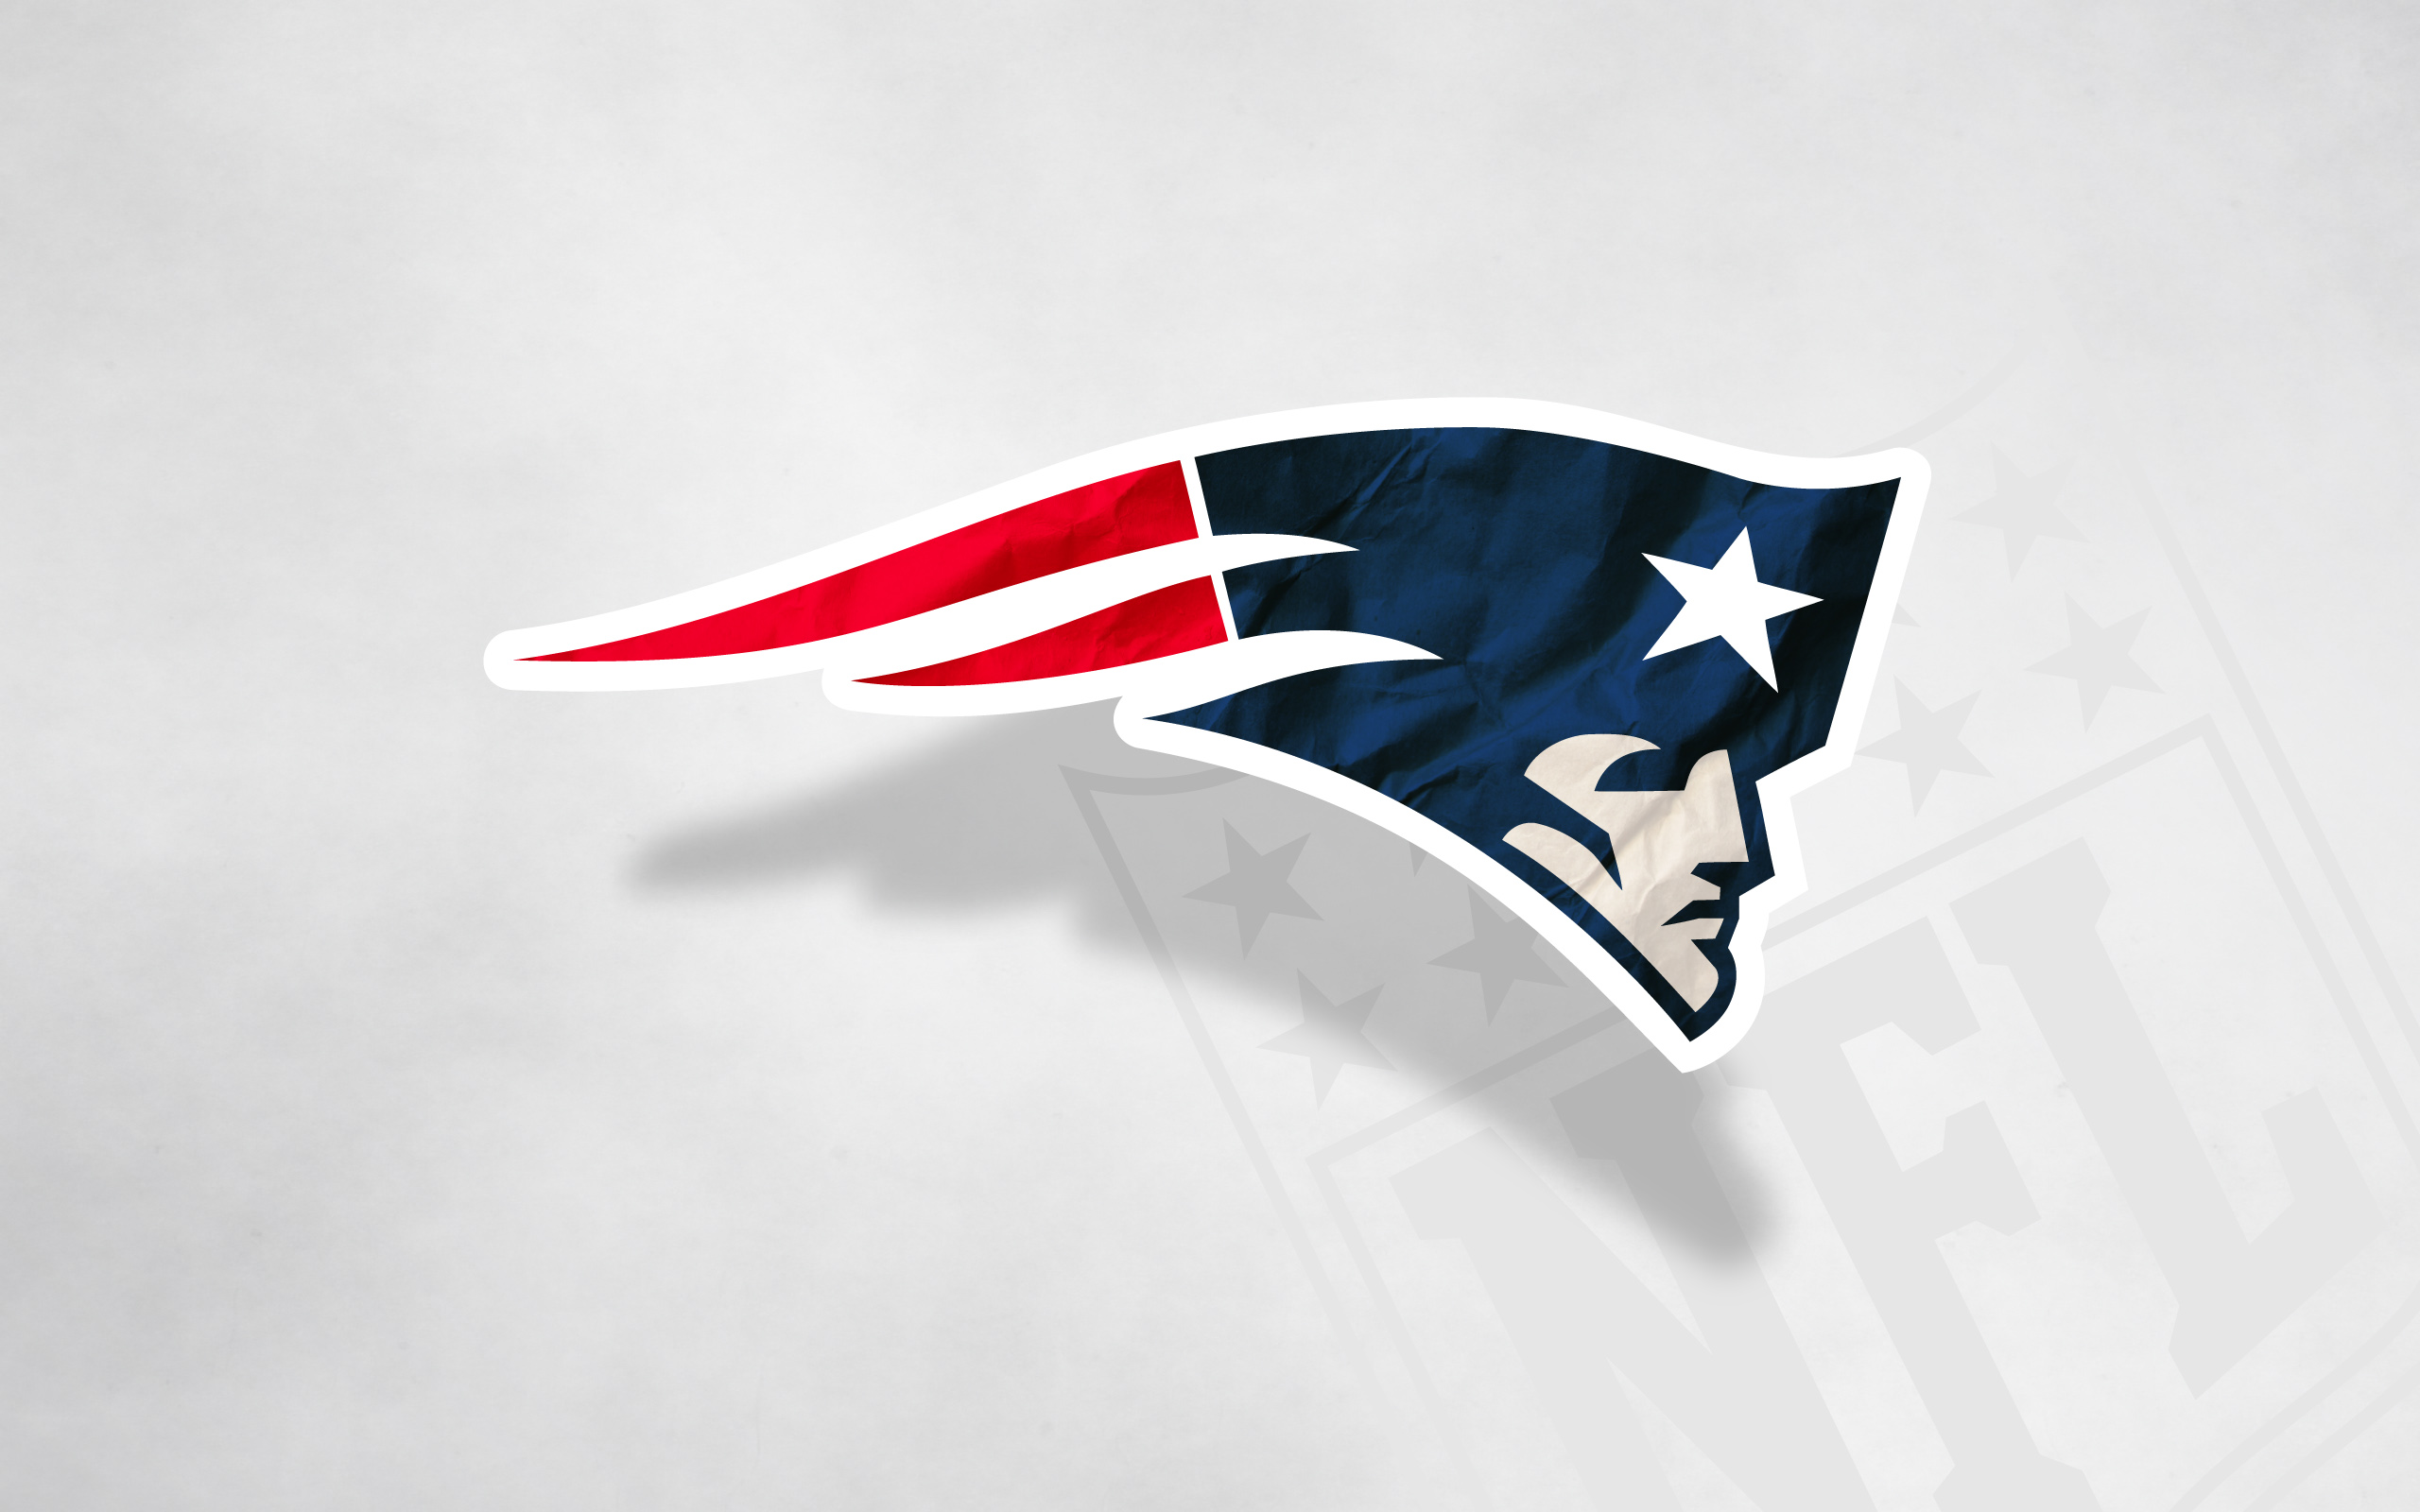 New england patriots wallpaper 5522 2560x1600 px hdwallsource new england patriots wallpaper 5522 voltagebd Choice Image